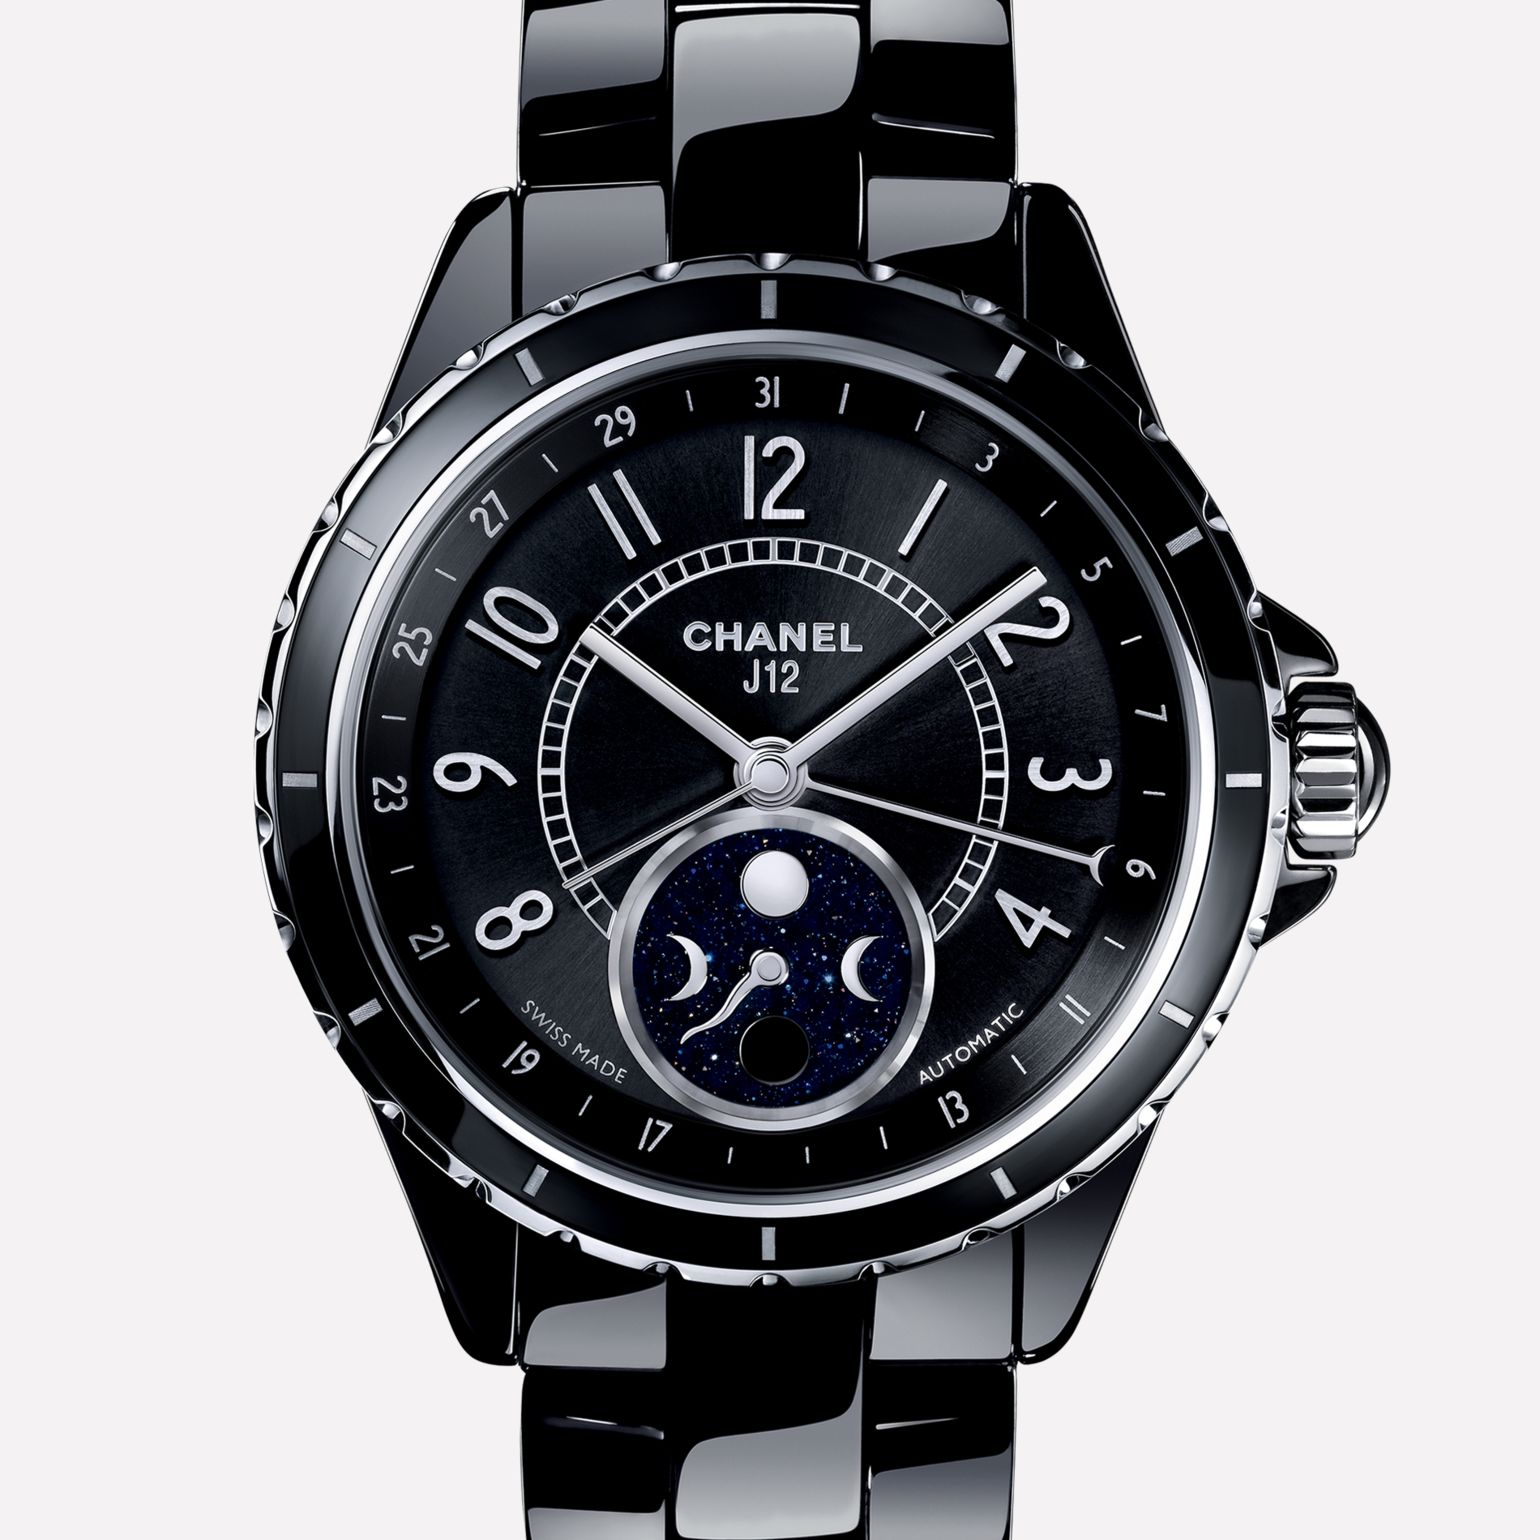 J12 Moonphase Watch Black highly resistant ceramic and steel